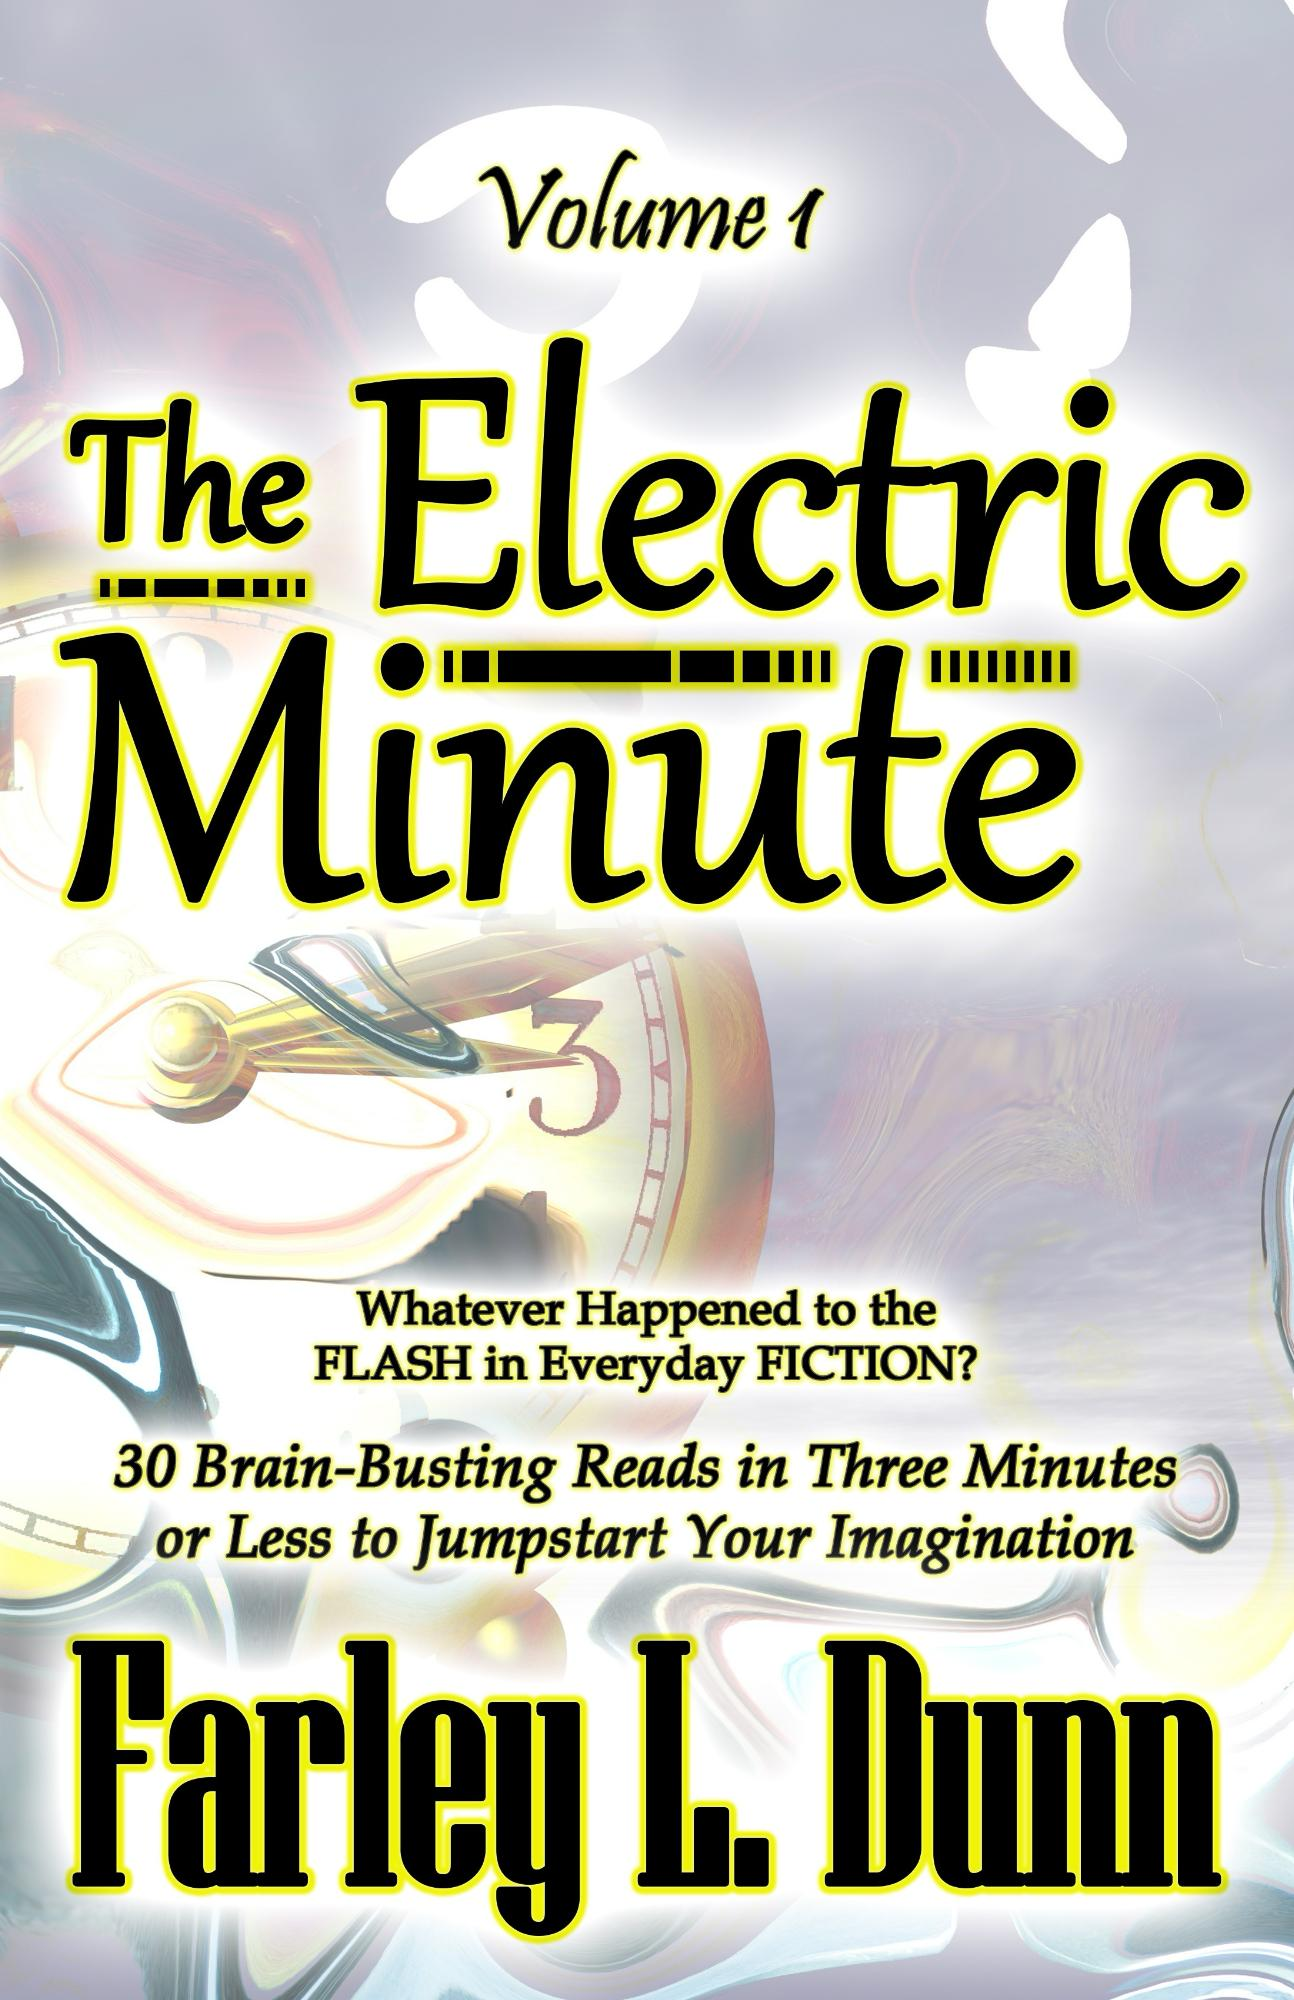 The Electric Minute Cover for Kindle Vol 1